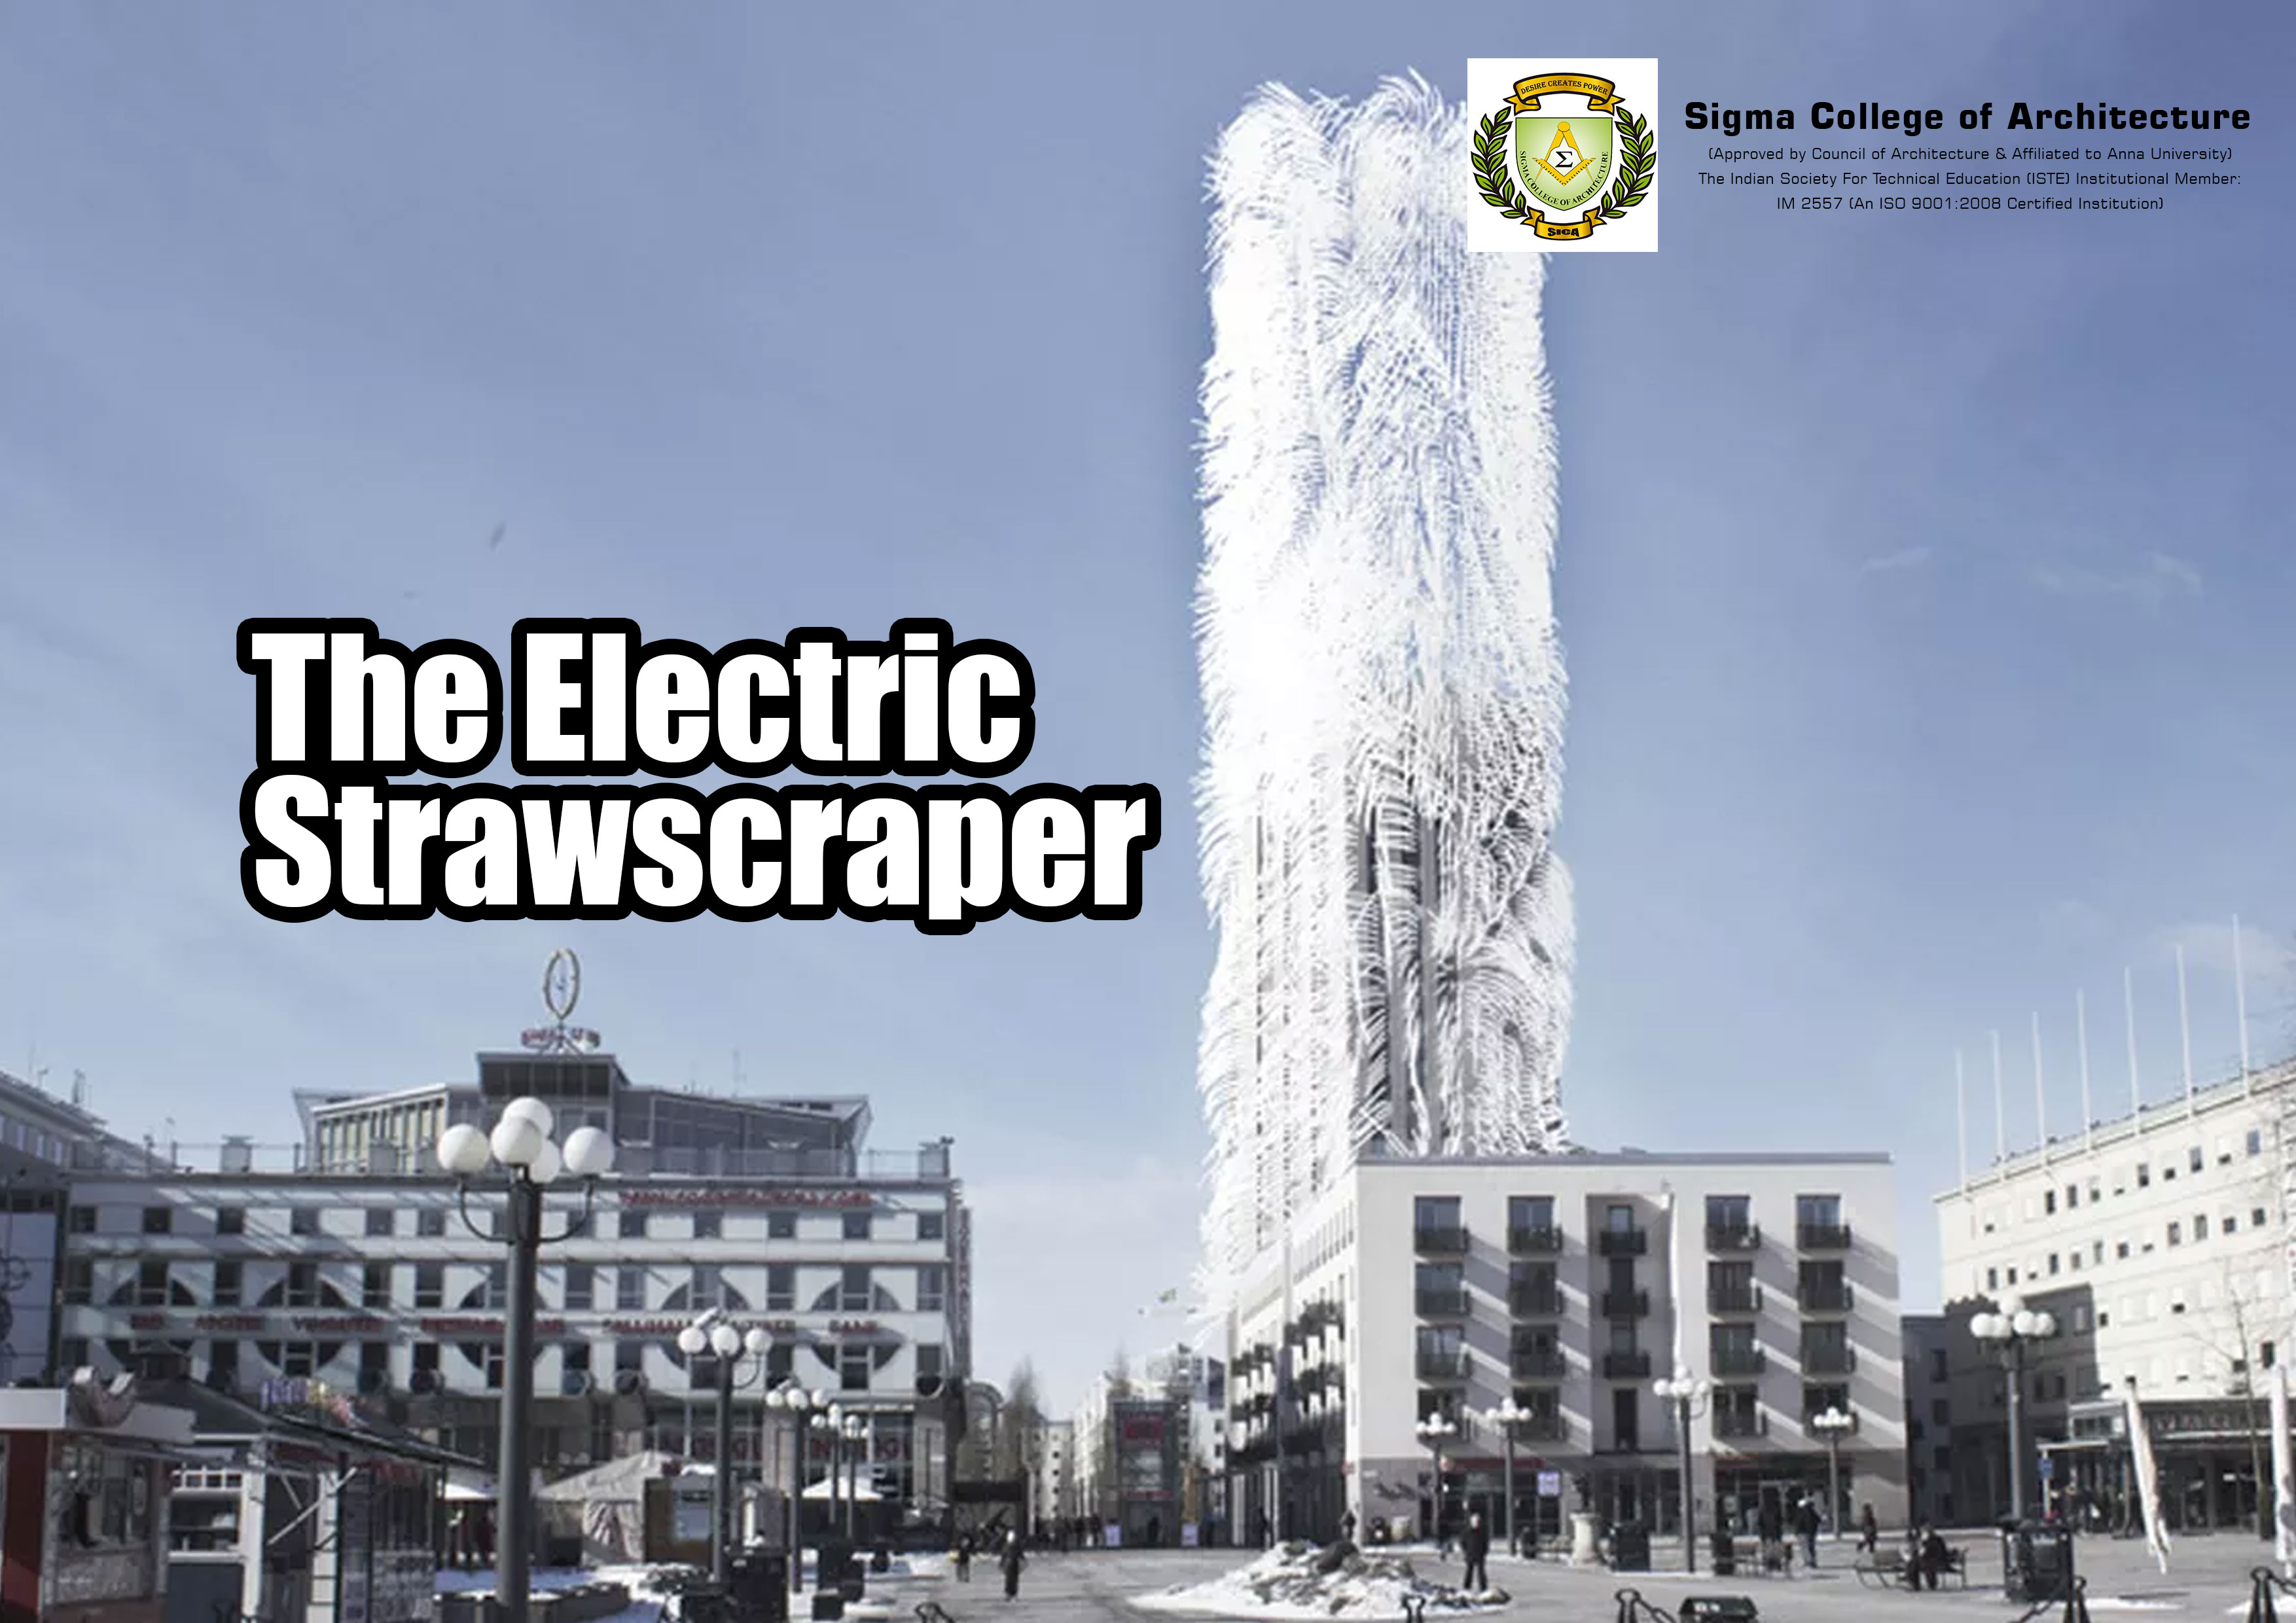 The Electric Strawscraper